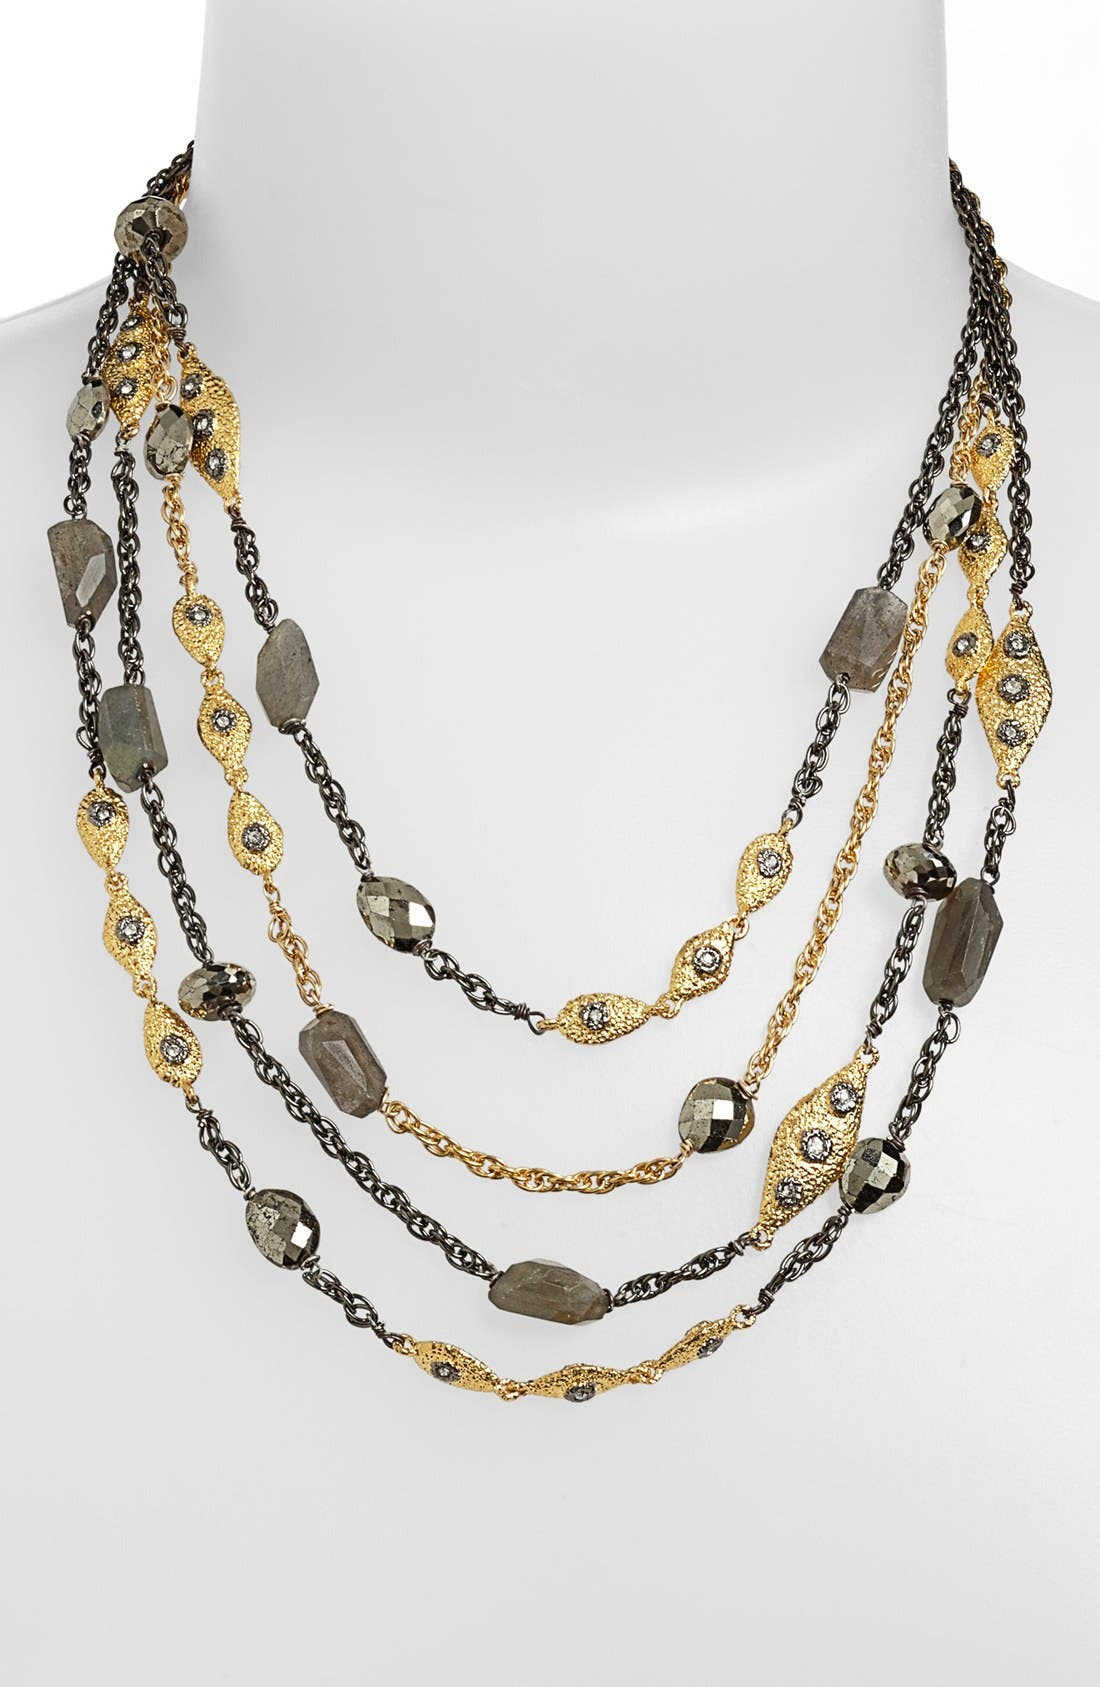 Main Image - Alexis Bittar 'Elements - Lace' Multistrand Necklace